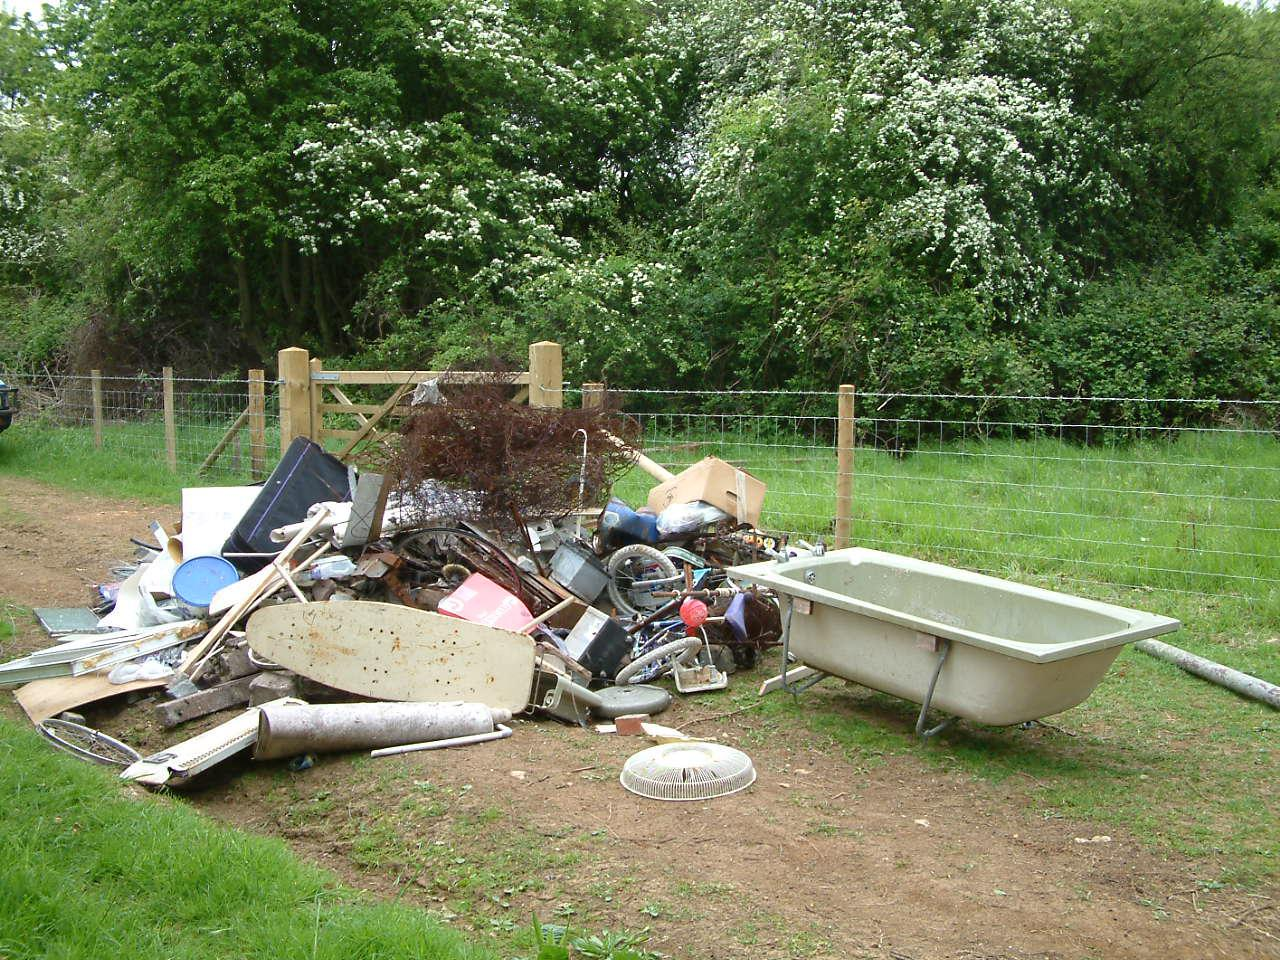 Picture of fly tipping courtesy of Natural England